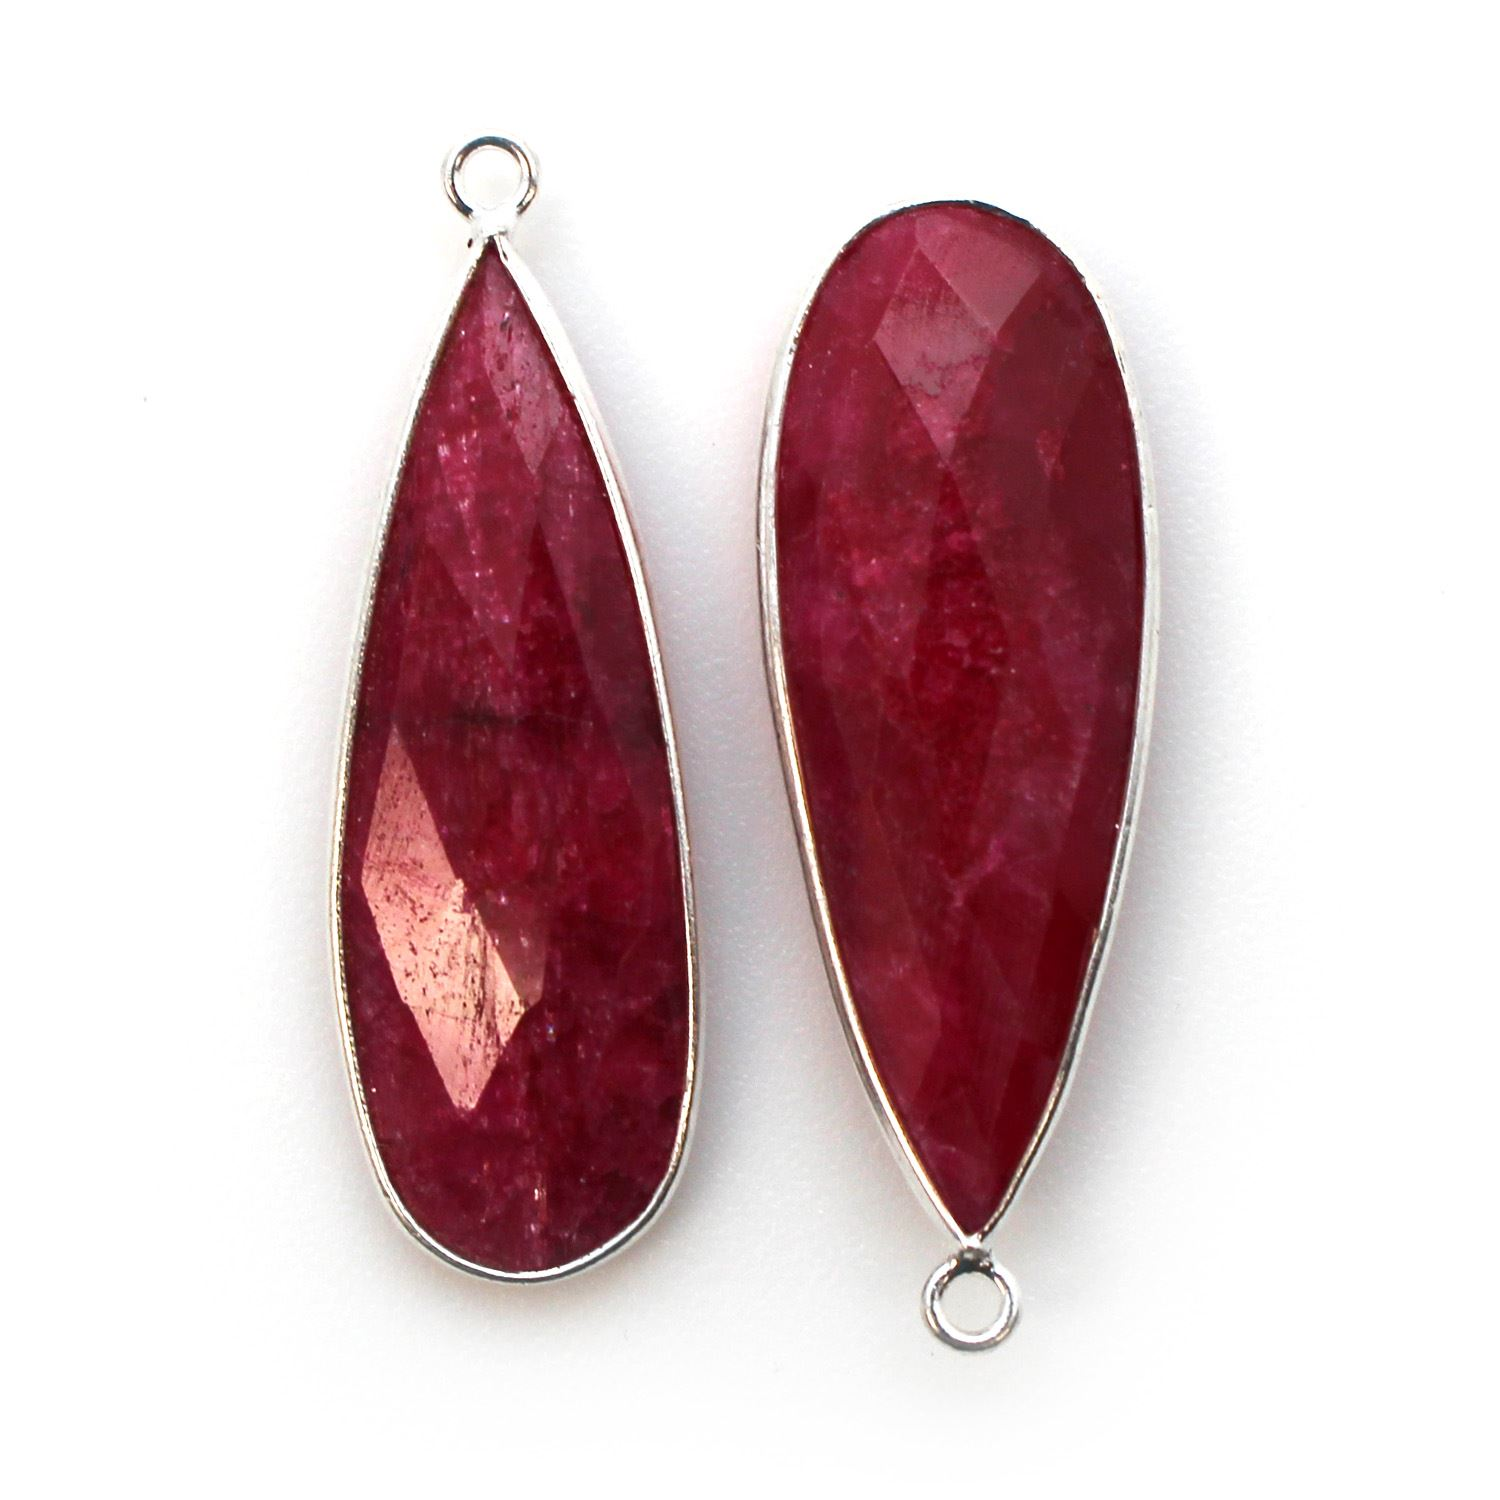 Bezel Charm Pendant - 925 Sterling Silver Charm - Elongated Teardrop Shape-Ruby Dyed - July Birthstone - 34mm by 11mm (sold per 2 pieces)